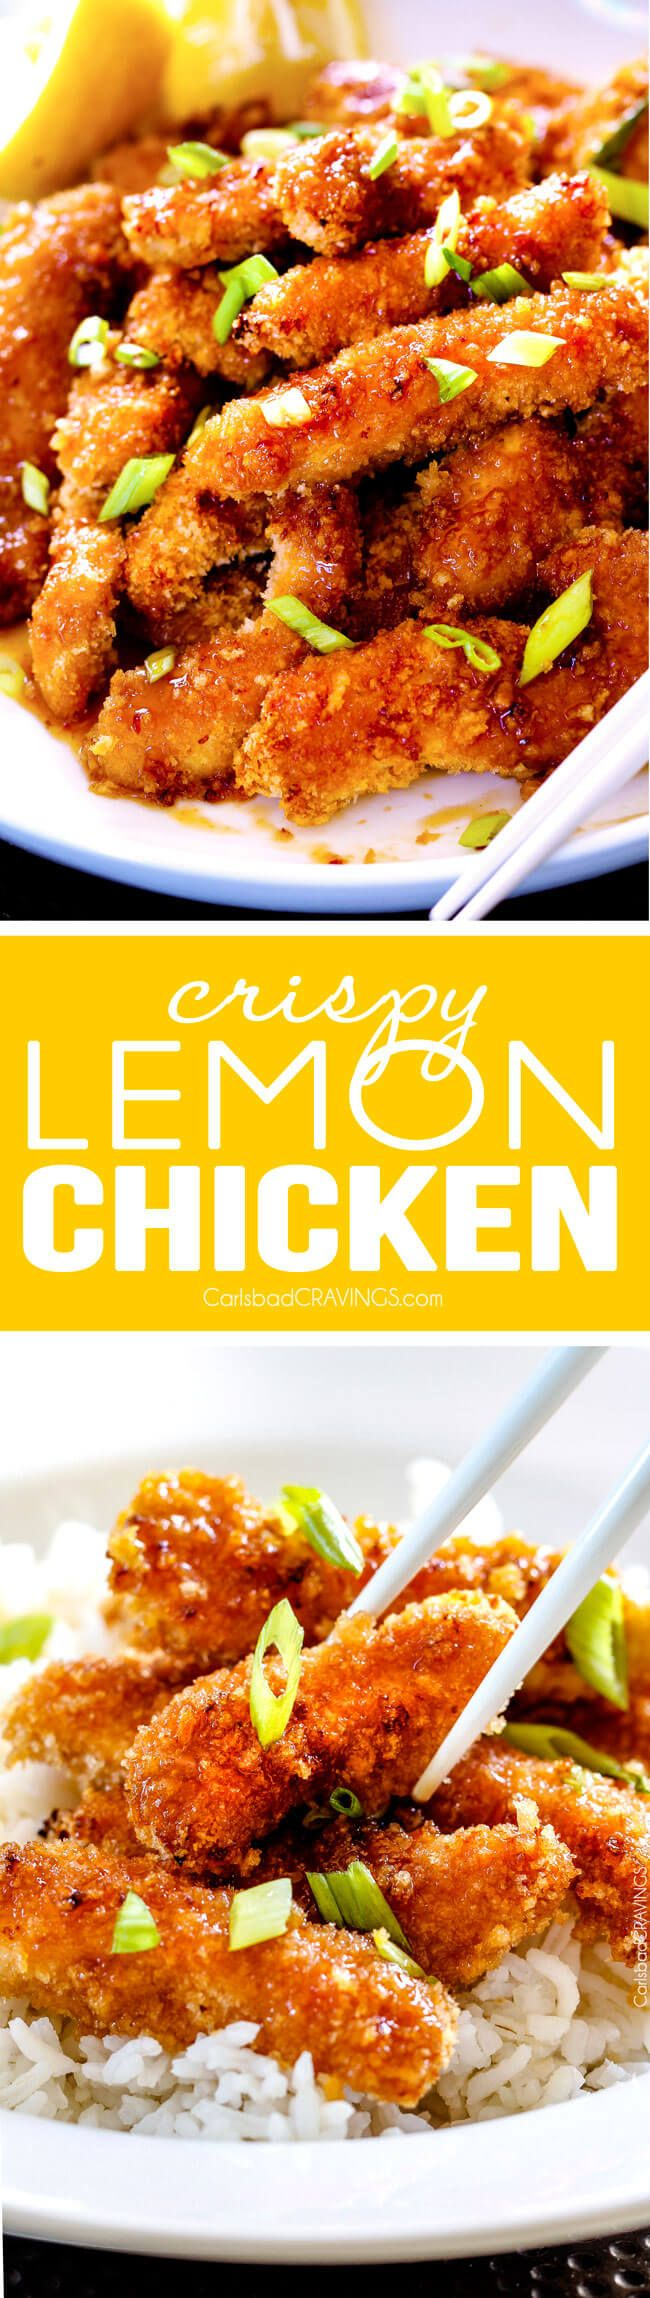 Crispy Sweet and Tangy Chinese Lemon Chicken - My family devours this crunchy sweet and tangy chicken! and I love the one step batter - so much easier than traditional breading!  via @carlsbadcraving